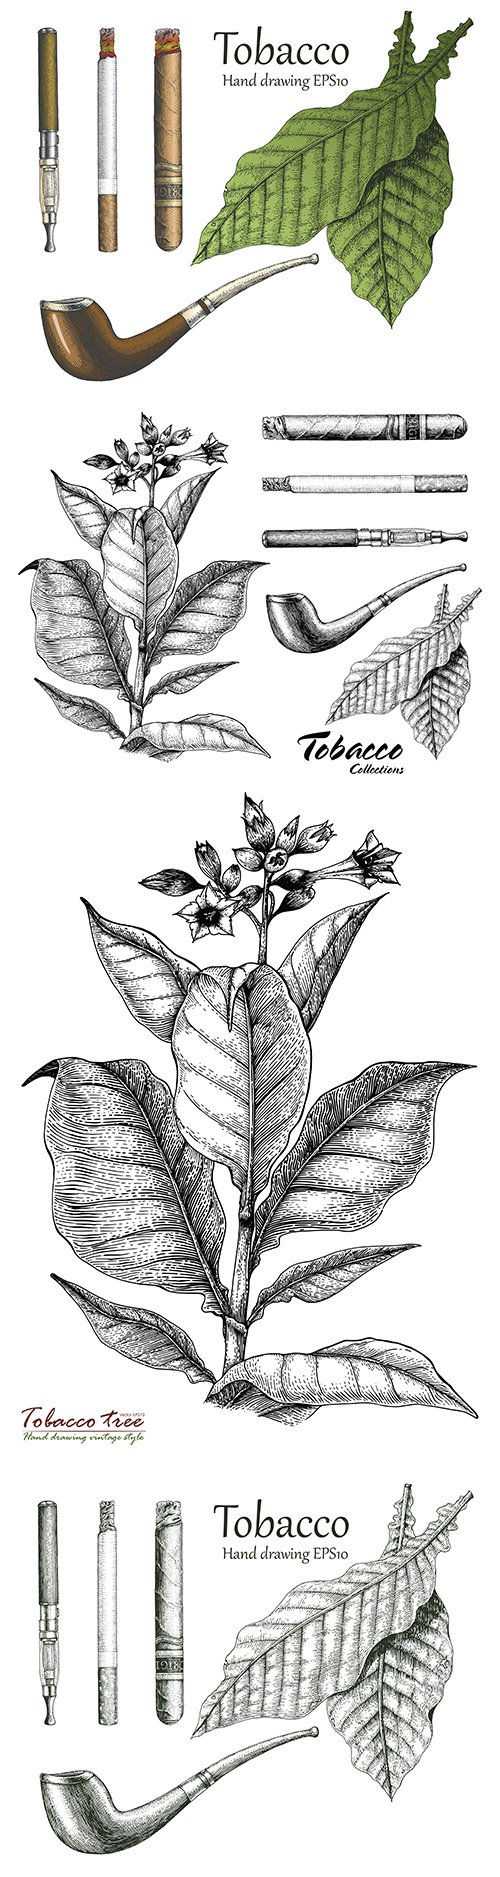 Tobacco collection hand-drawn in vintage style